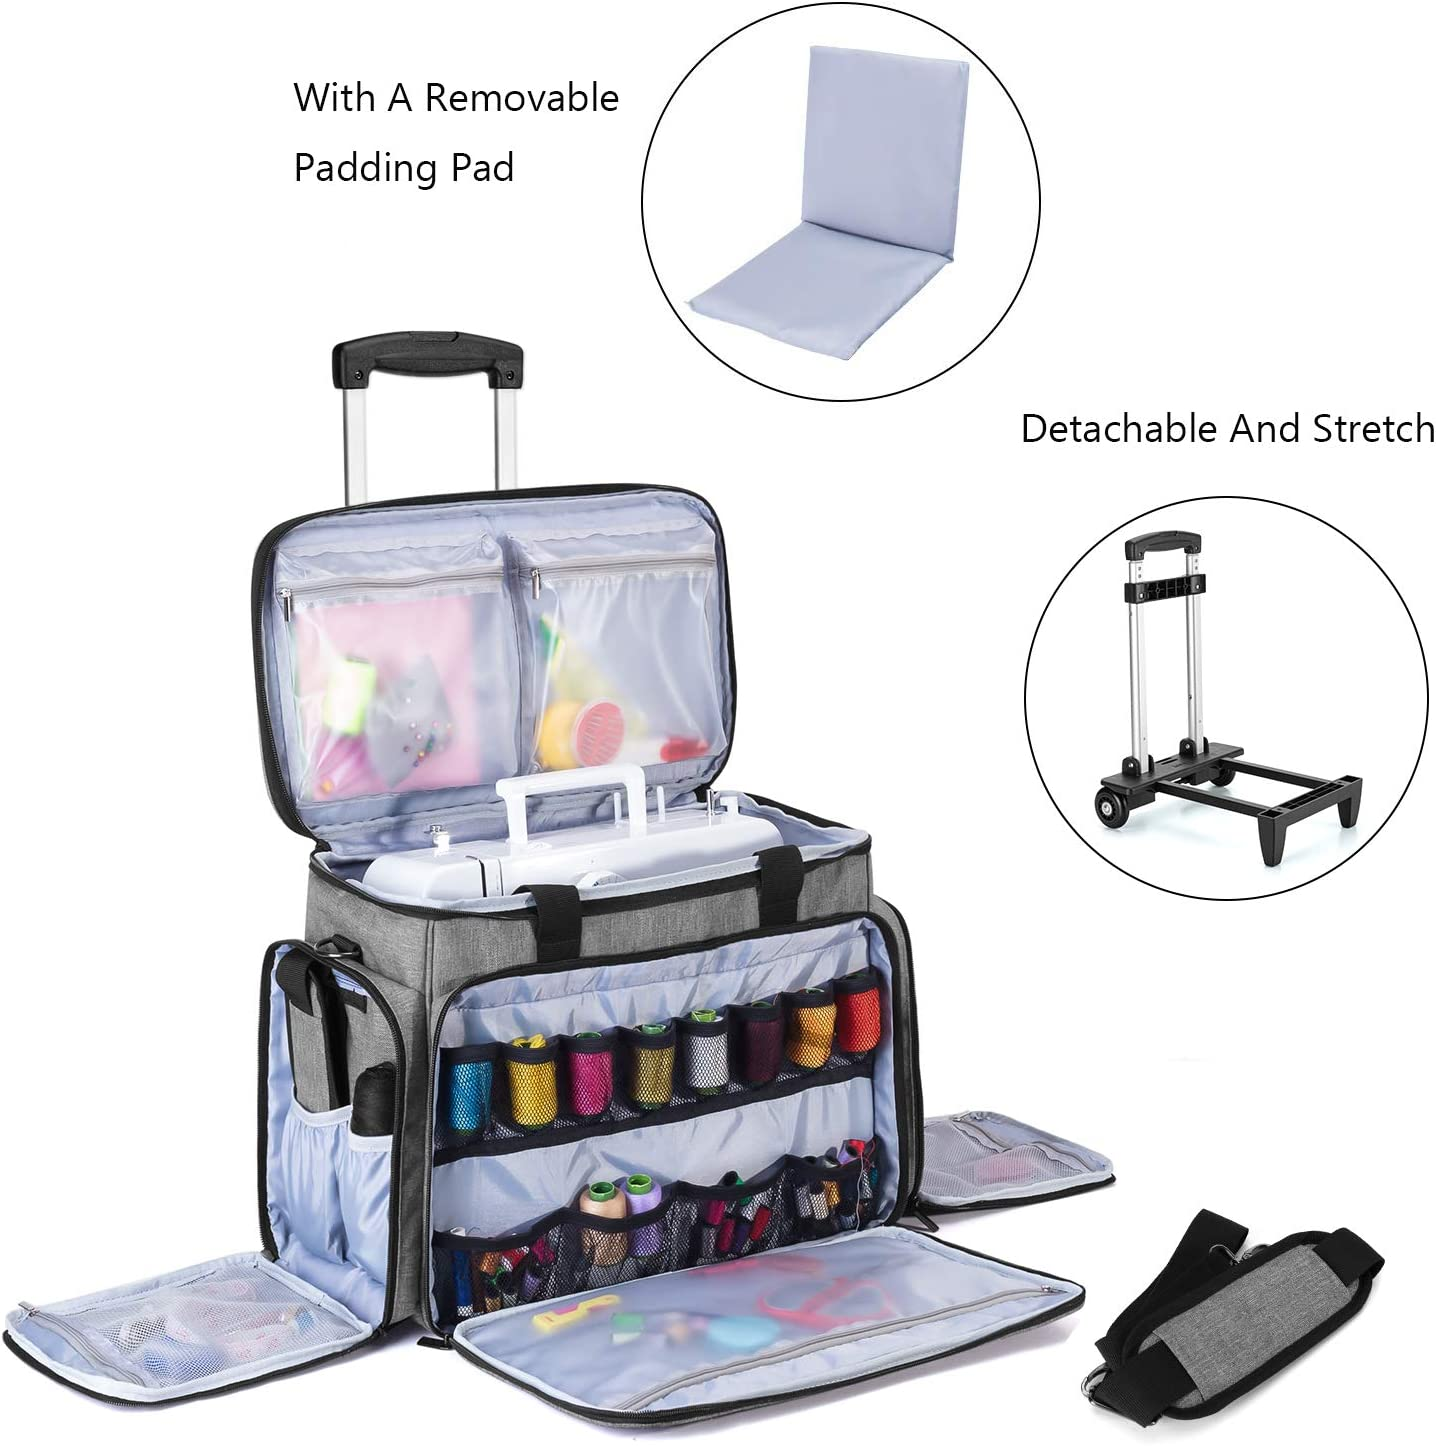 Patented Design Fits for Most Standard Sewing Machines Purple Luxja Sewing Machine Case with Detachable Dolly Rolling Sewing Machine Tote with Removable Bottom Pad